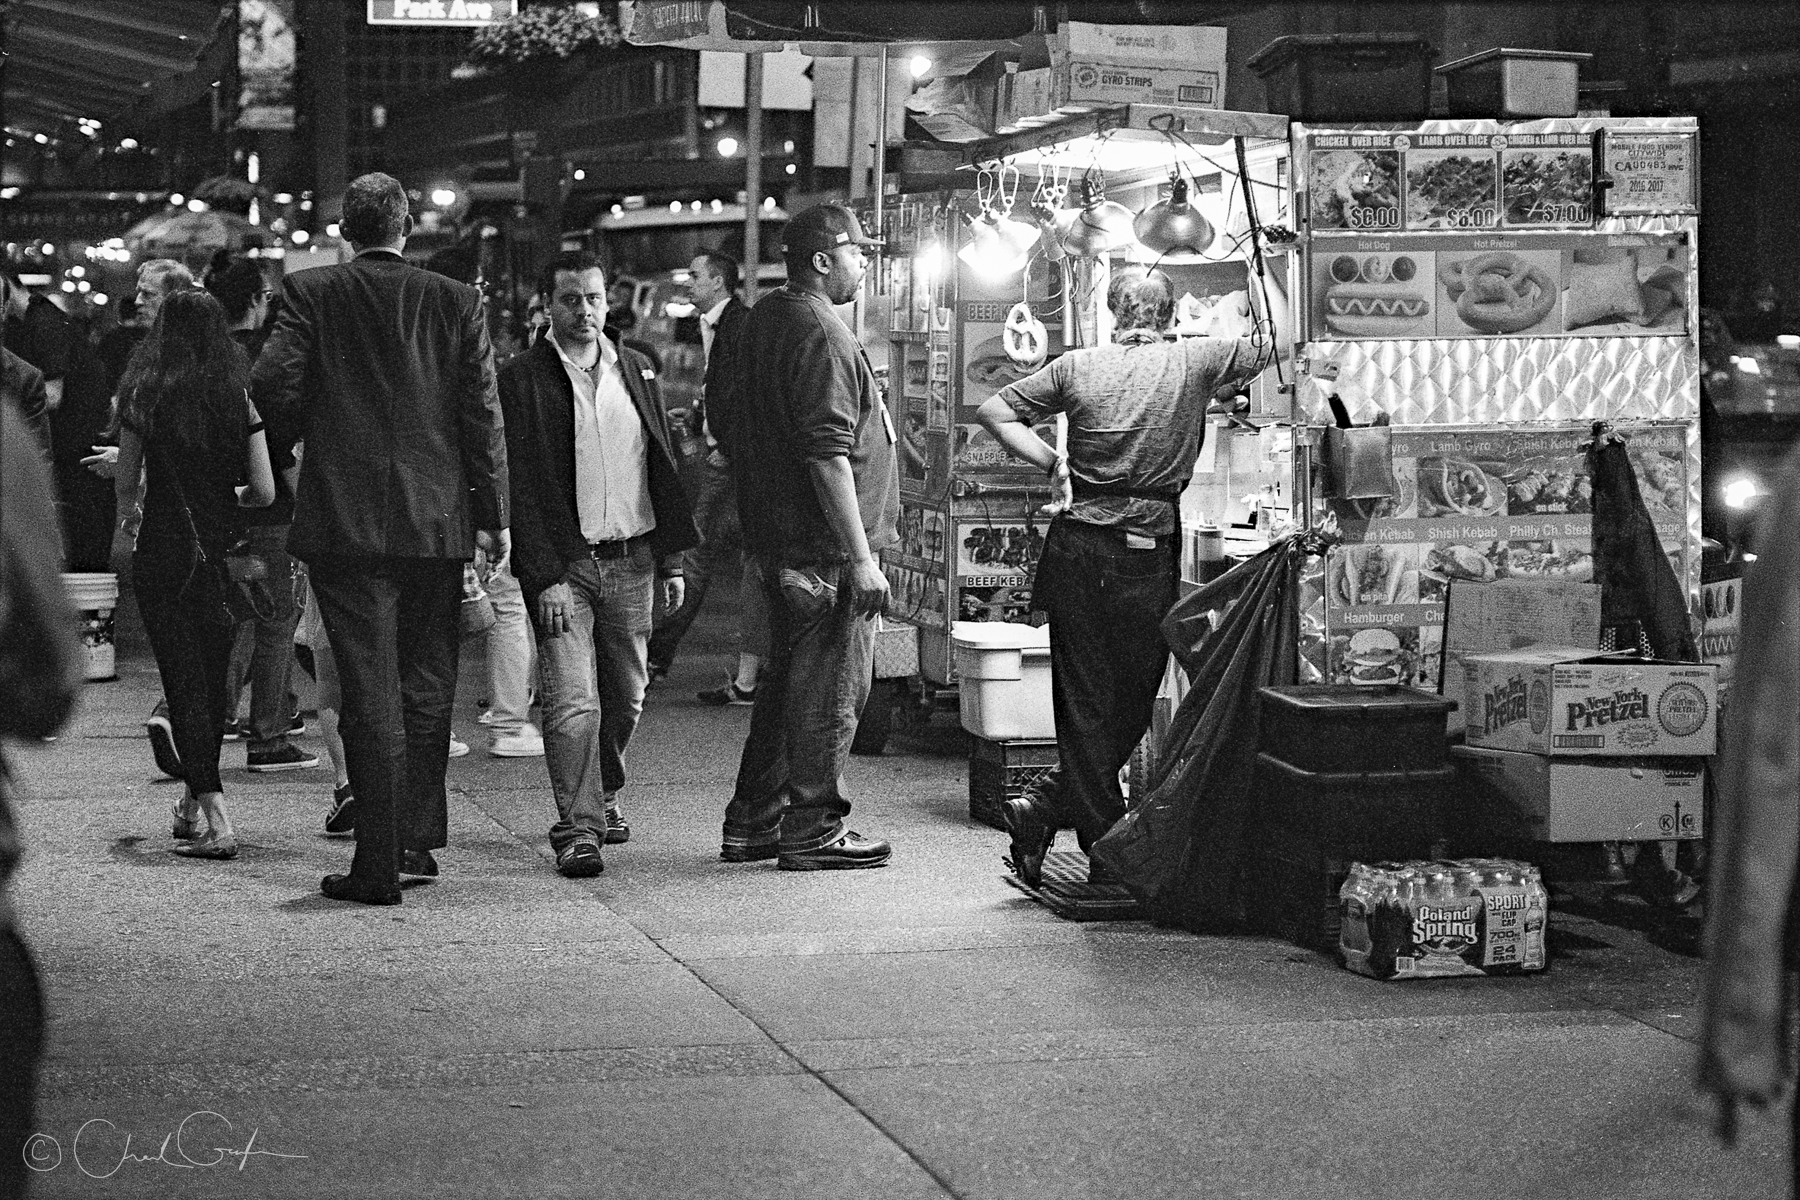 Nightly Halal Stand Beside Grand Central, Rear View (Image by Chad Gayle)